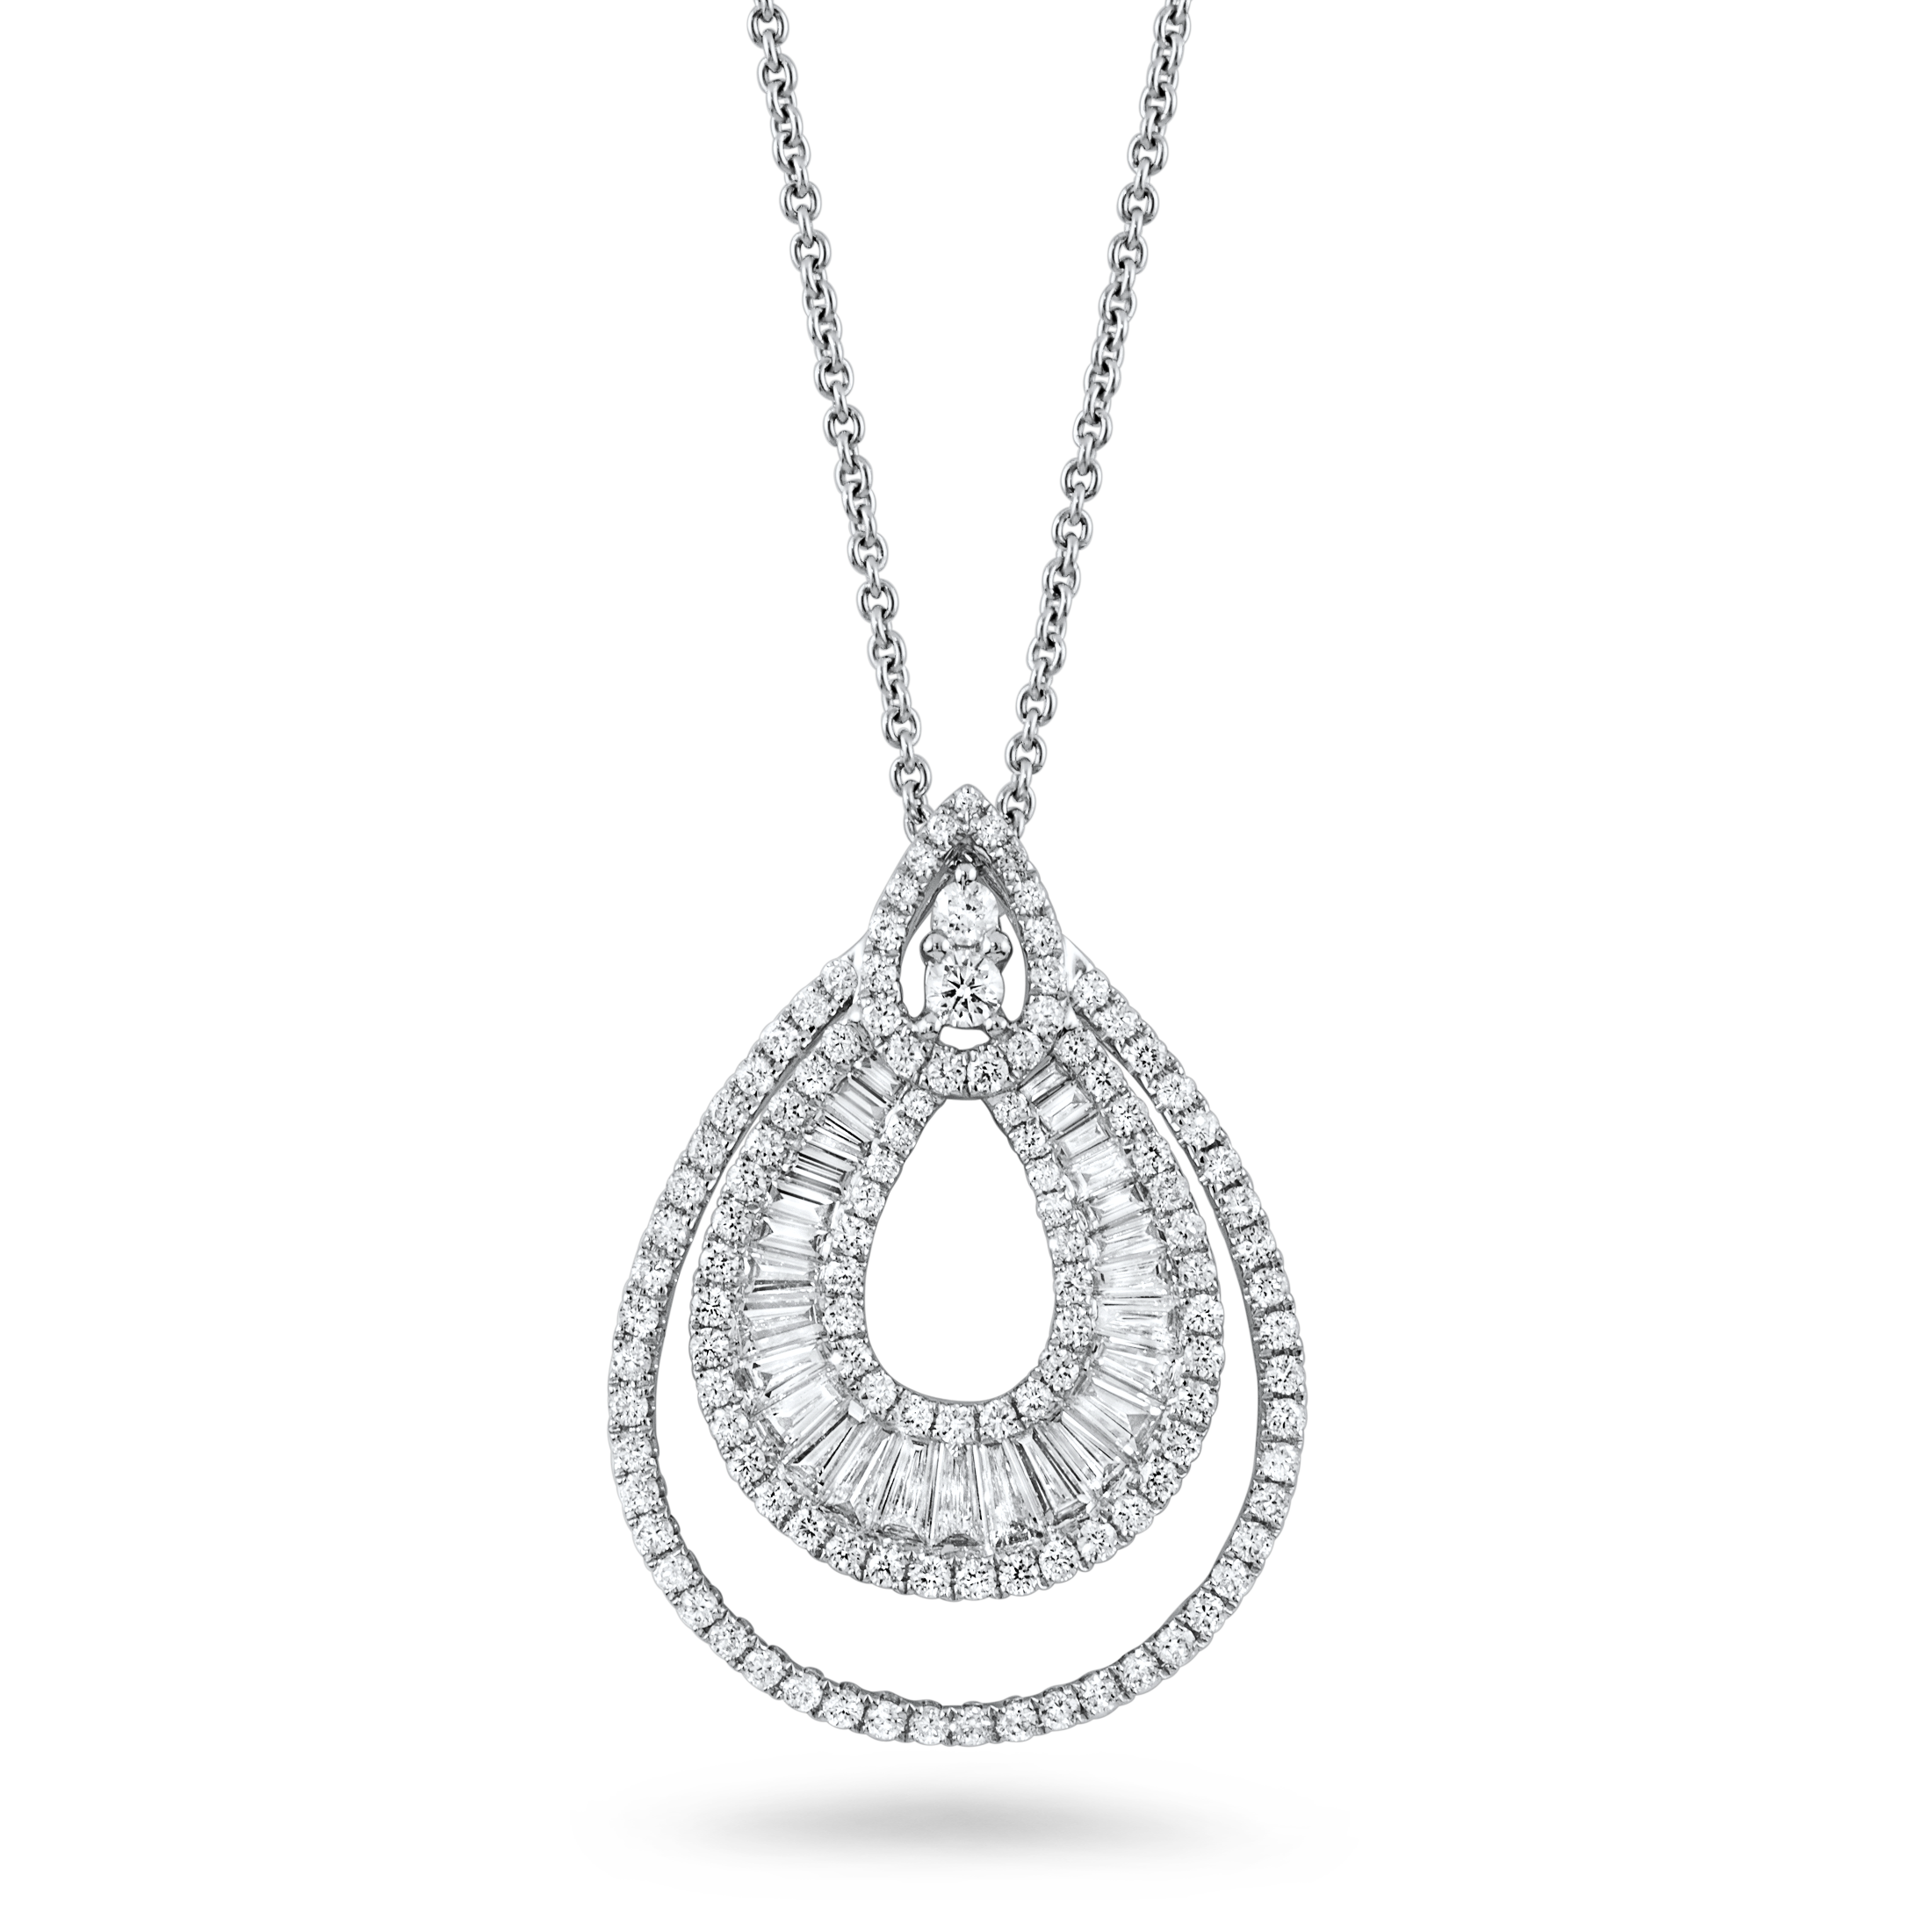 Grab and download Jewelry PNG